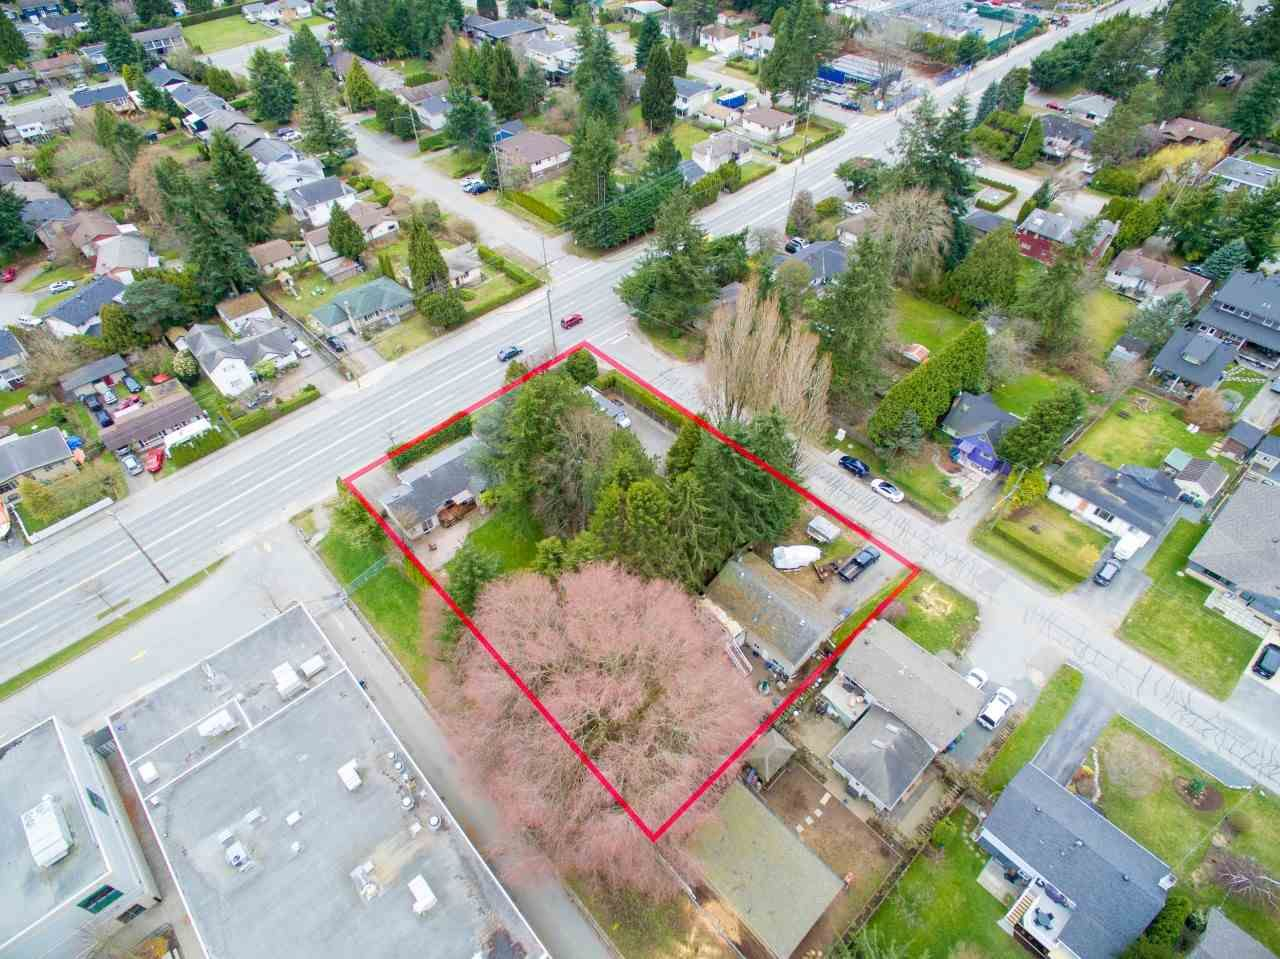 Main Photo: 15729 16 Avenue in Surrey: Sunnyside Park Surrey House for sale (South Surrey White Rock)  : MLS®# R2249148